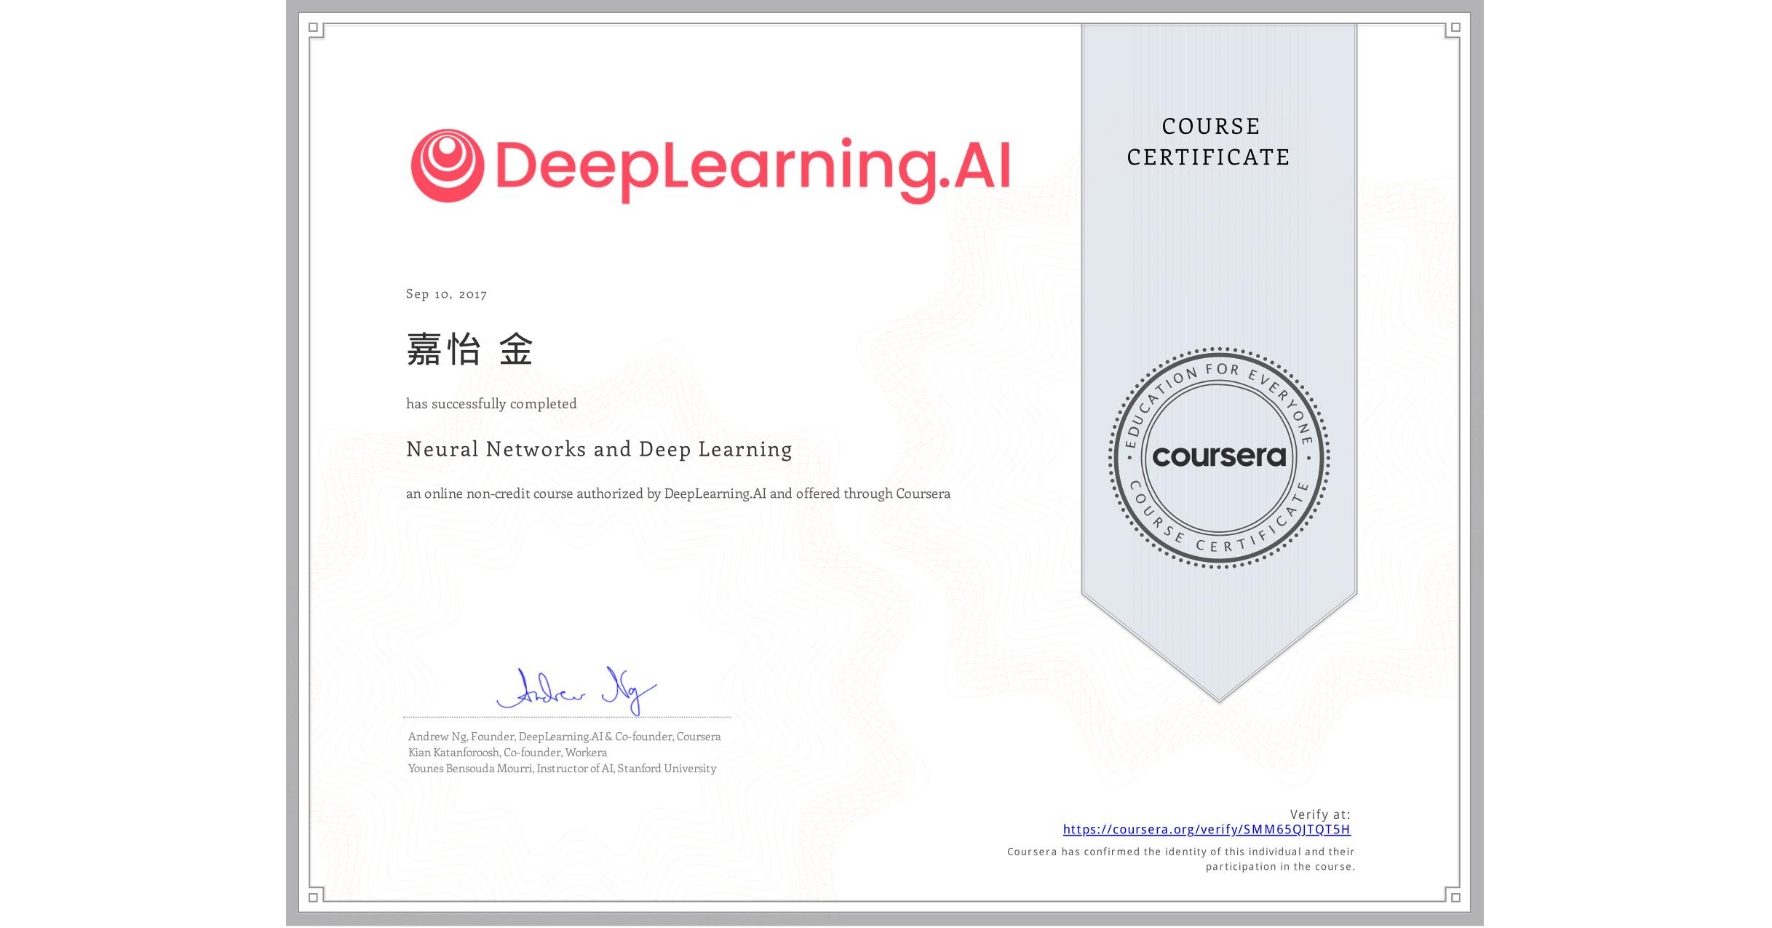 View certificate for 嘉怡 金, Neural Networks and Deep Learning, an online non-credit course authorized by DeepLearning.AI and offered through Coursera